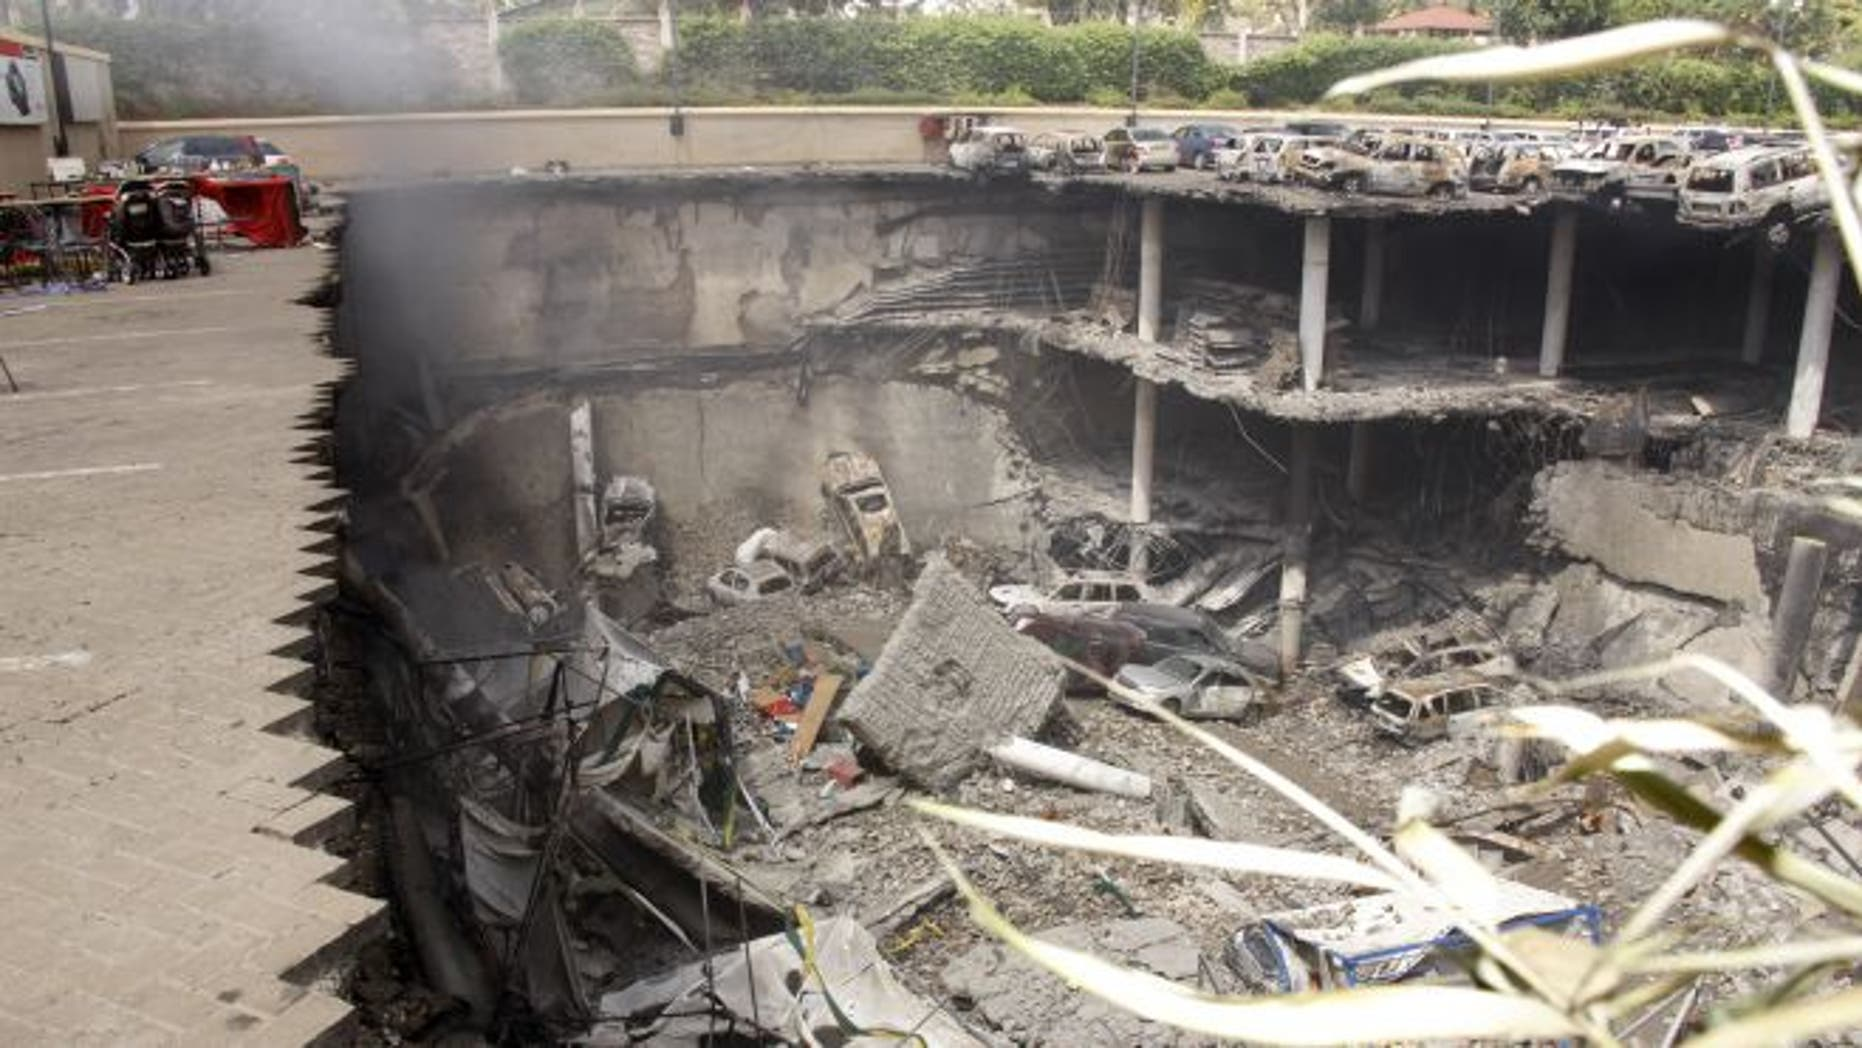 FILE: Sept. 26, 2013: This image shows the collapsed upper car park of the Westgate Mall in Nairobi, Kenya.